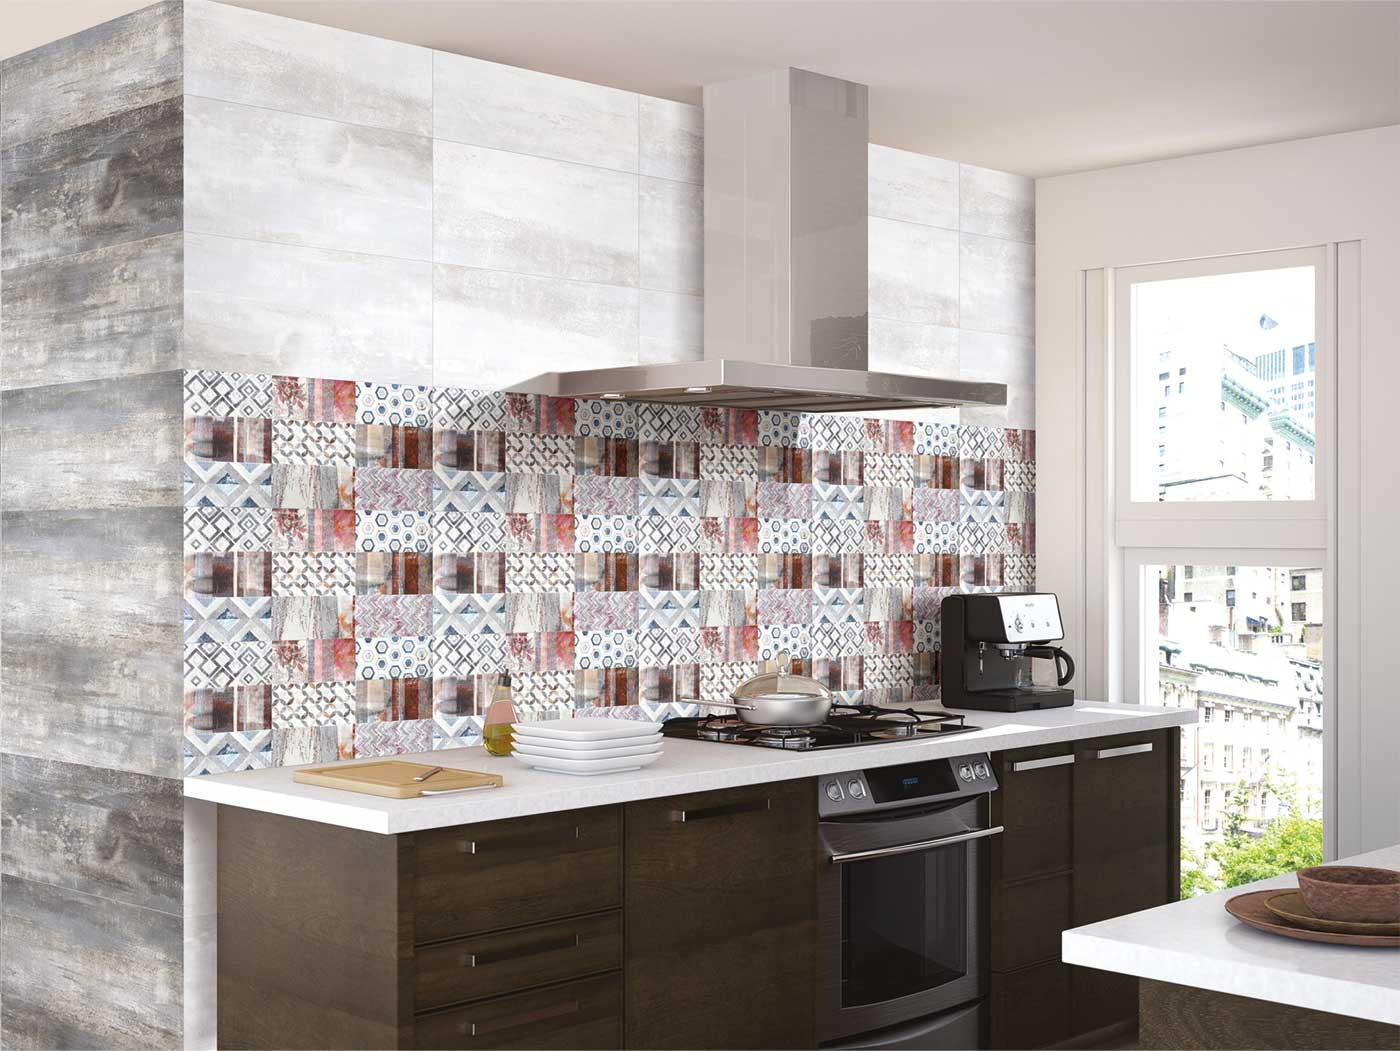 Metallic Kitchen Tiles In India